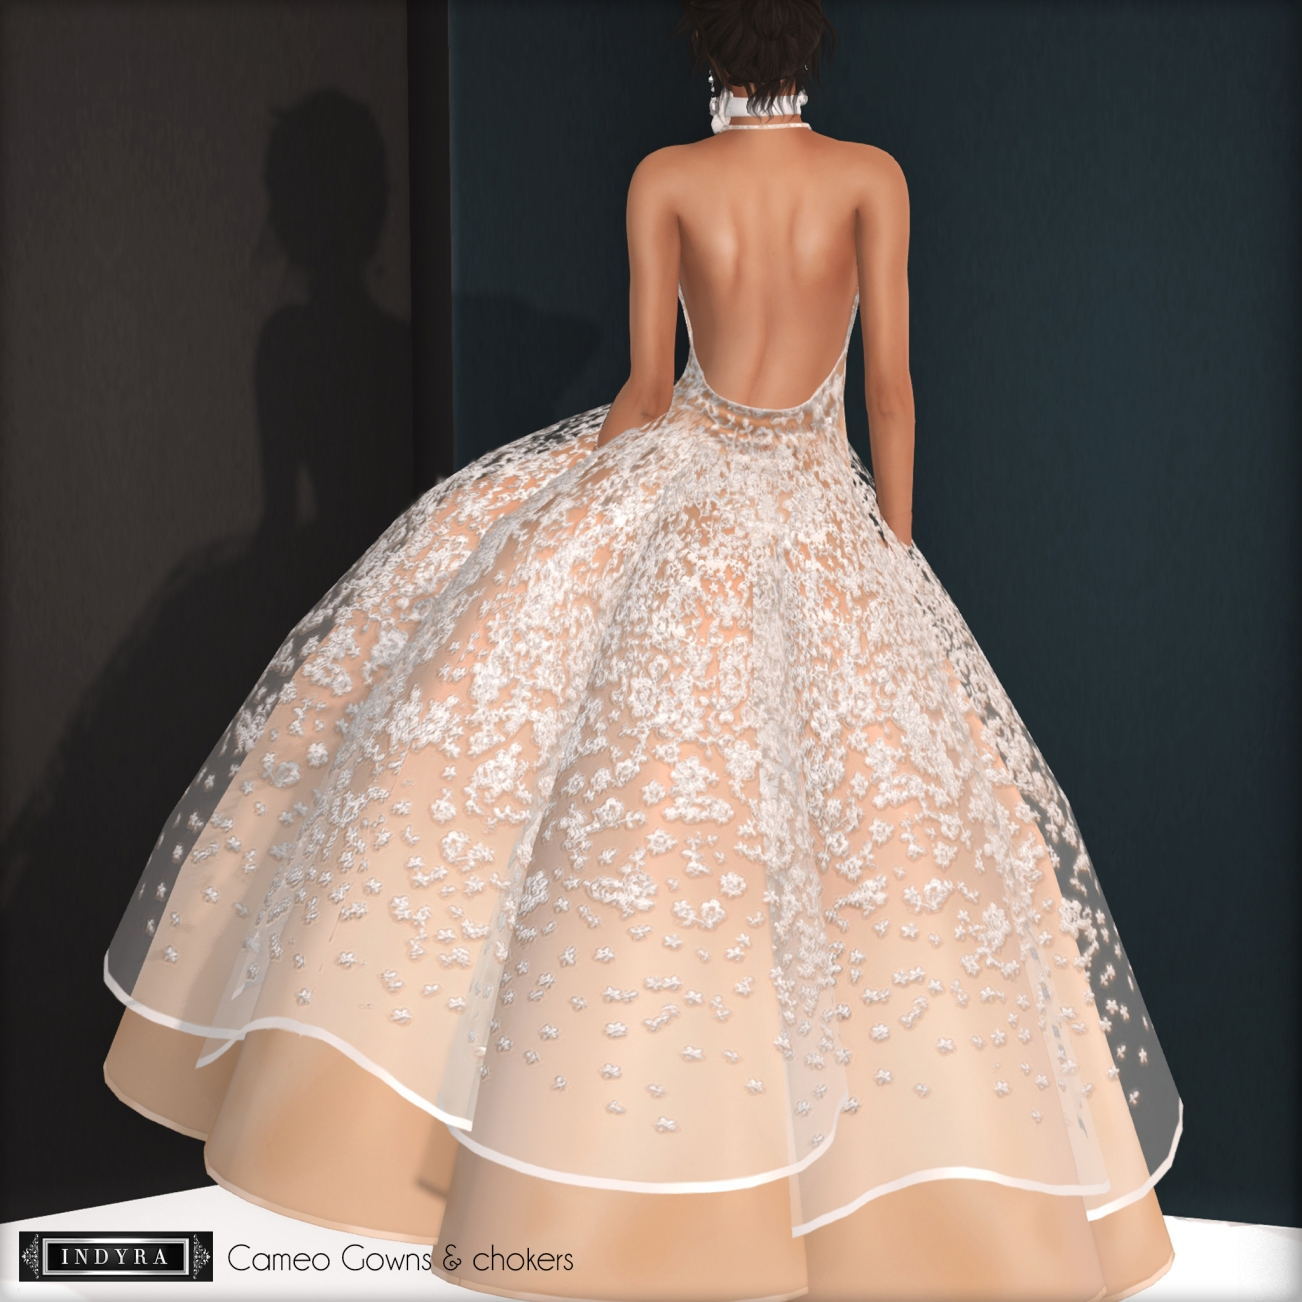 {Indyra} Cameo Gown version 2, back view